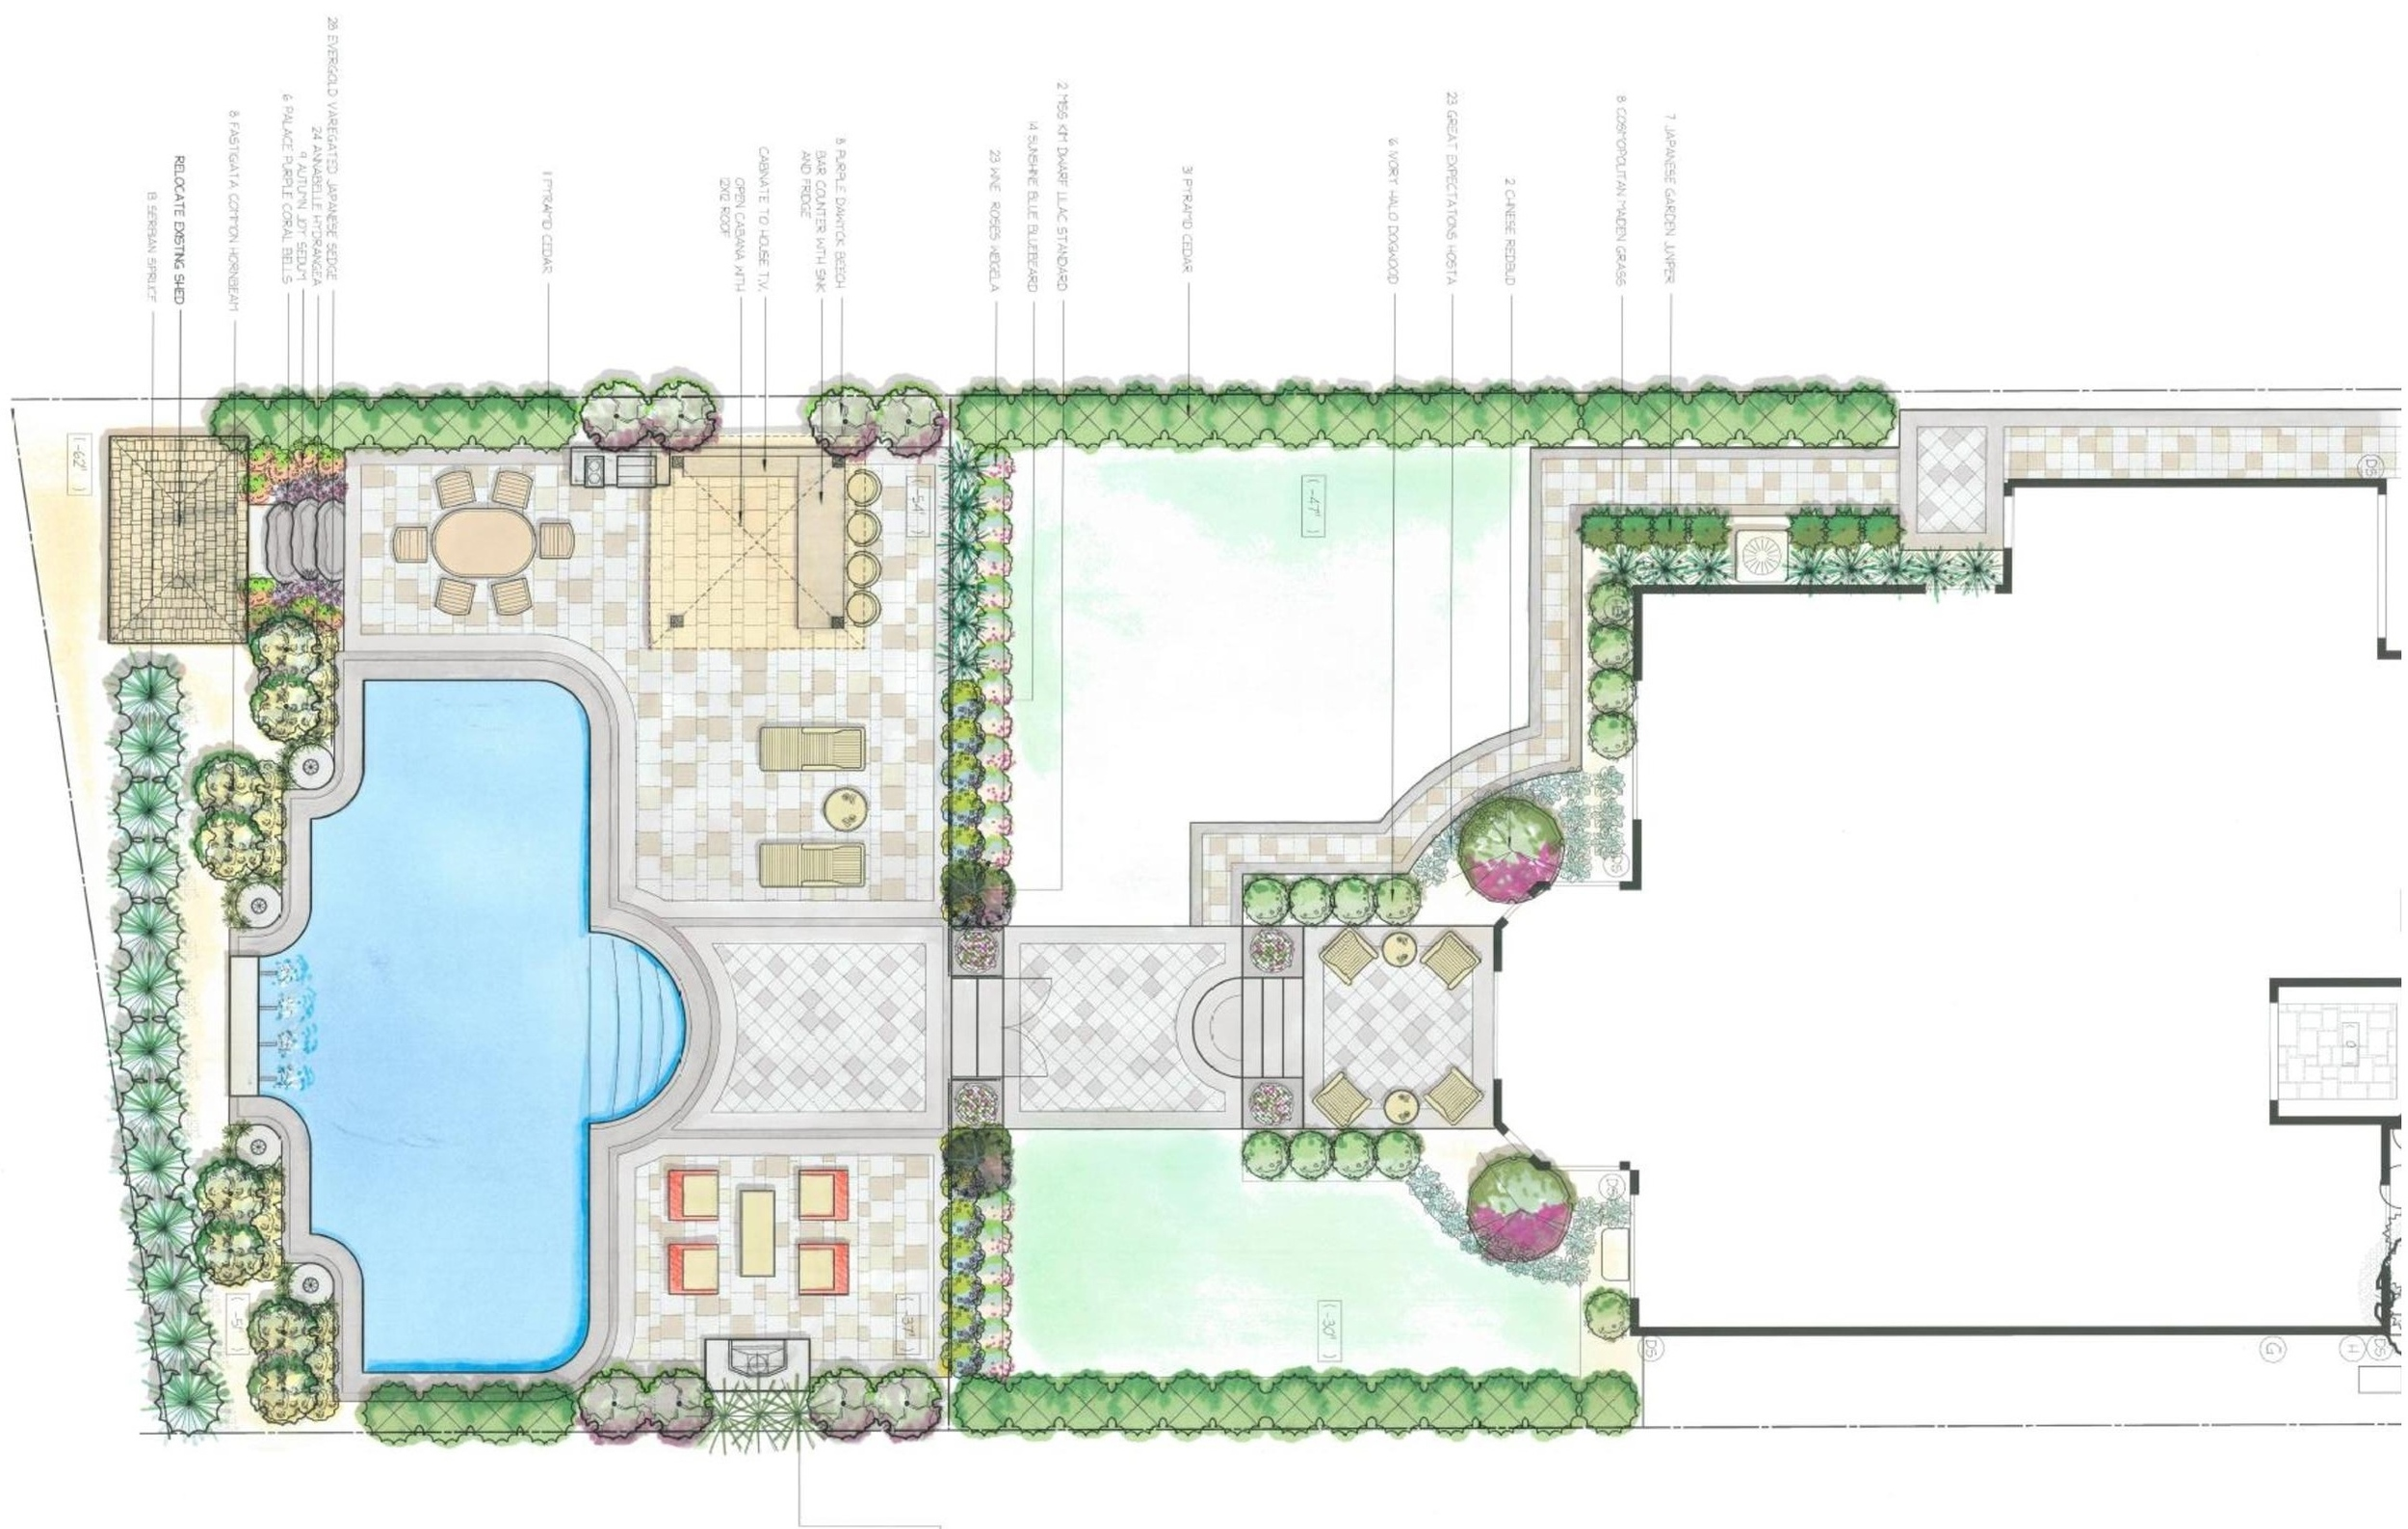 SWIMMING POOL DESIGN AND LANDSCAPE DESIGN IDEAS — darsan